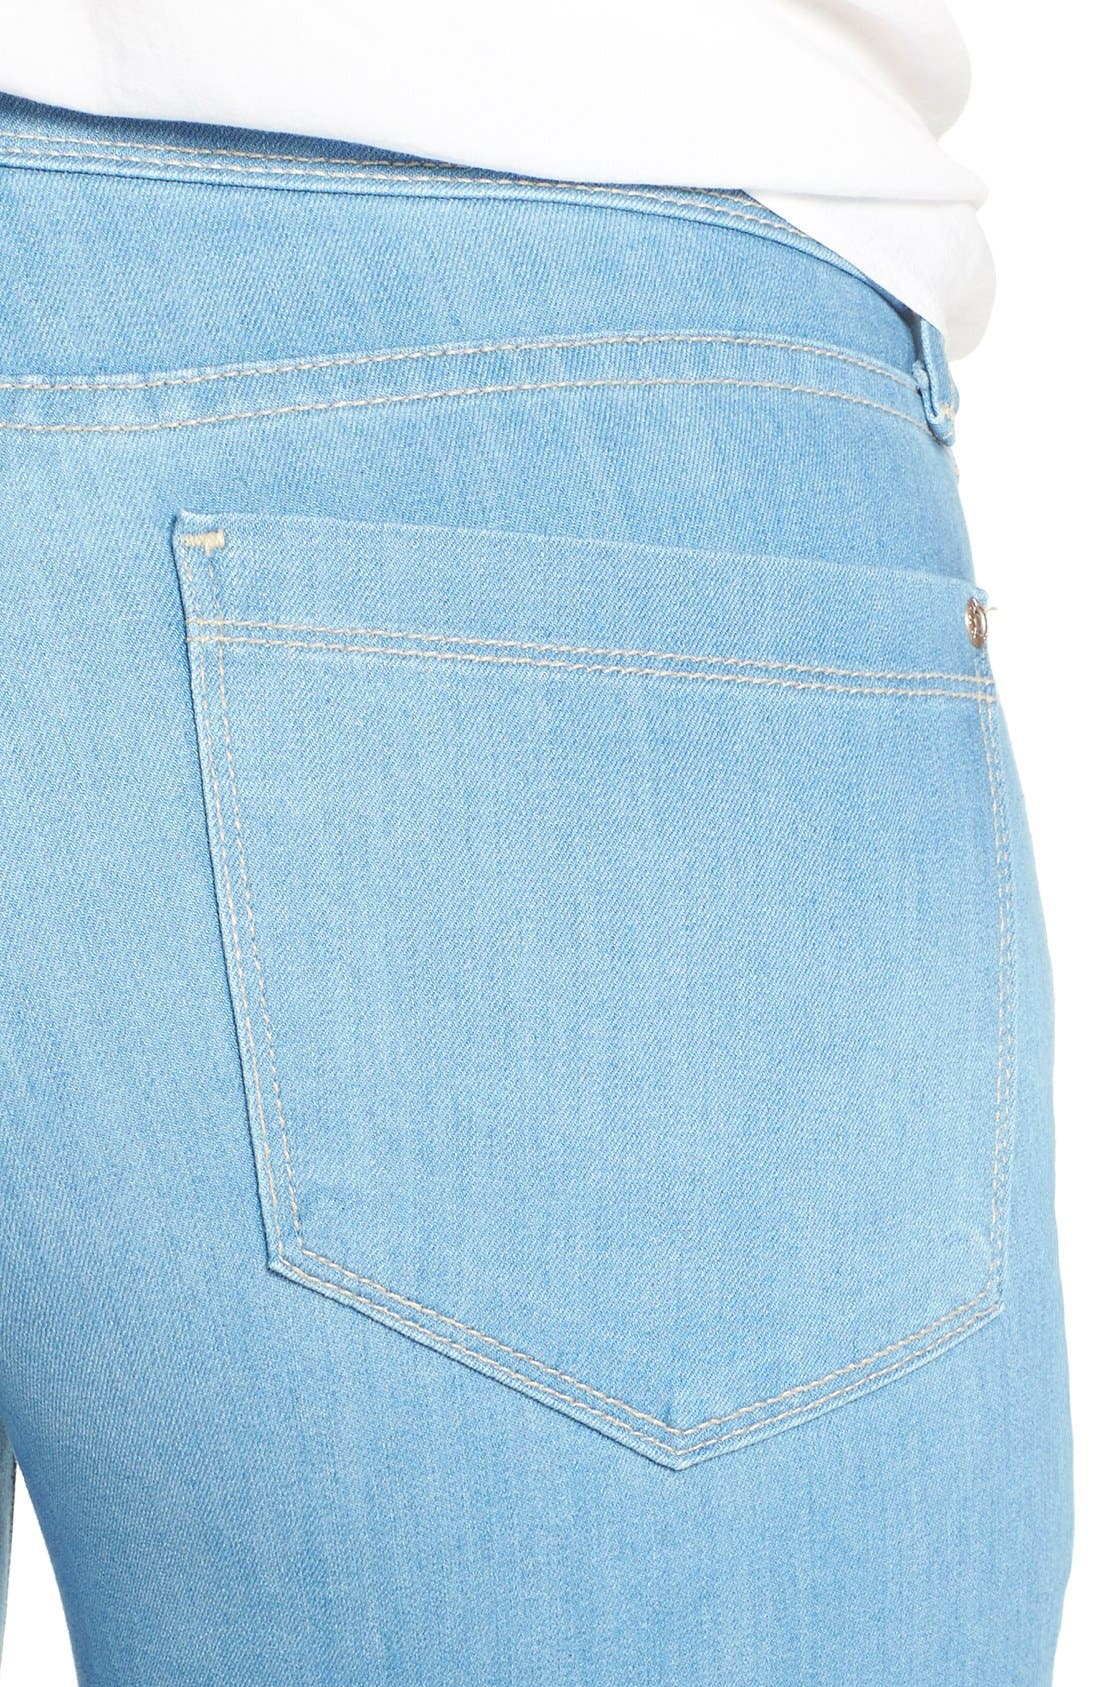 'Barbara' Stretch Bootcut Jeans,                             Alternate thumbnail 4, color,